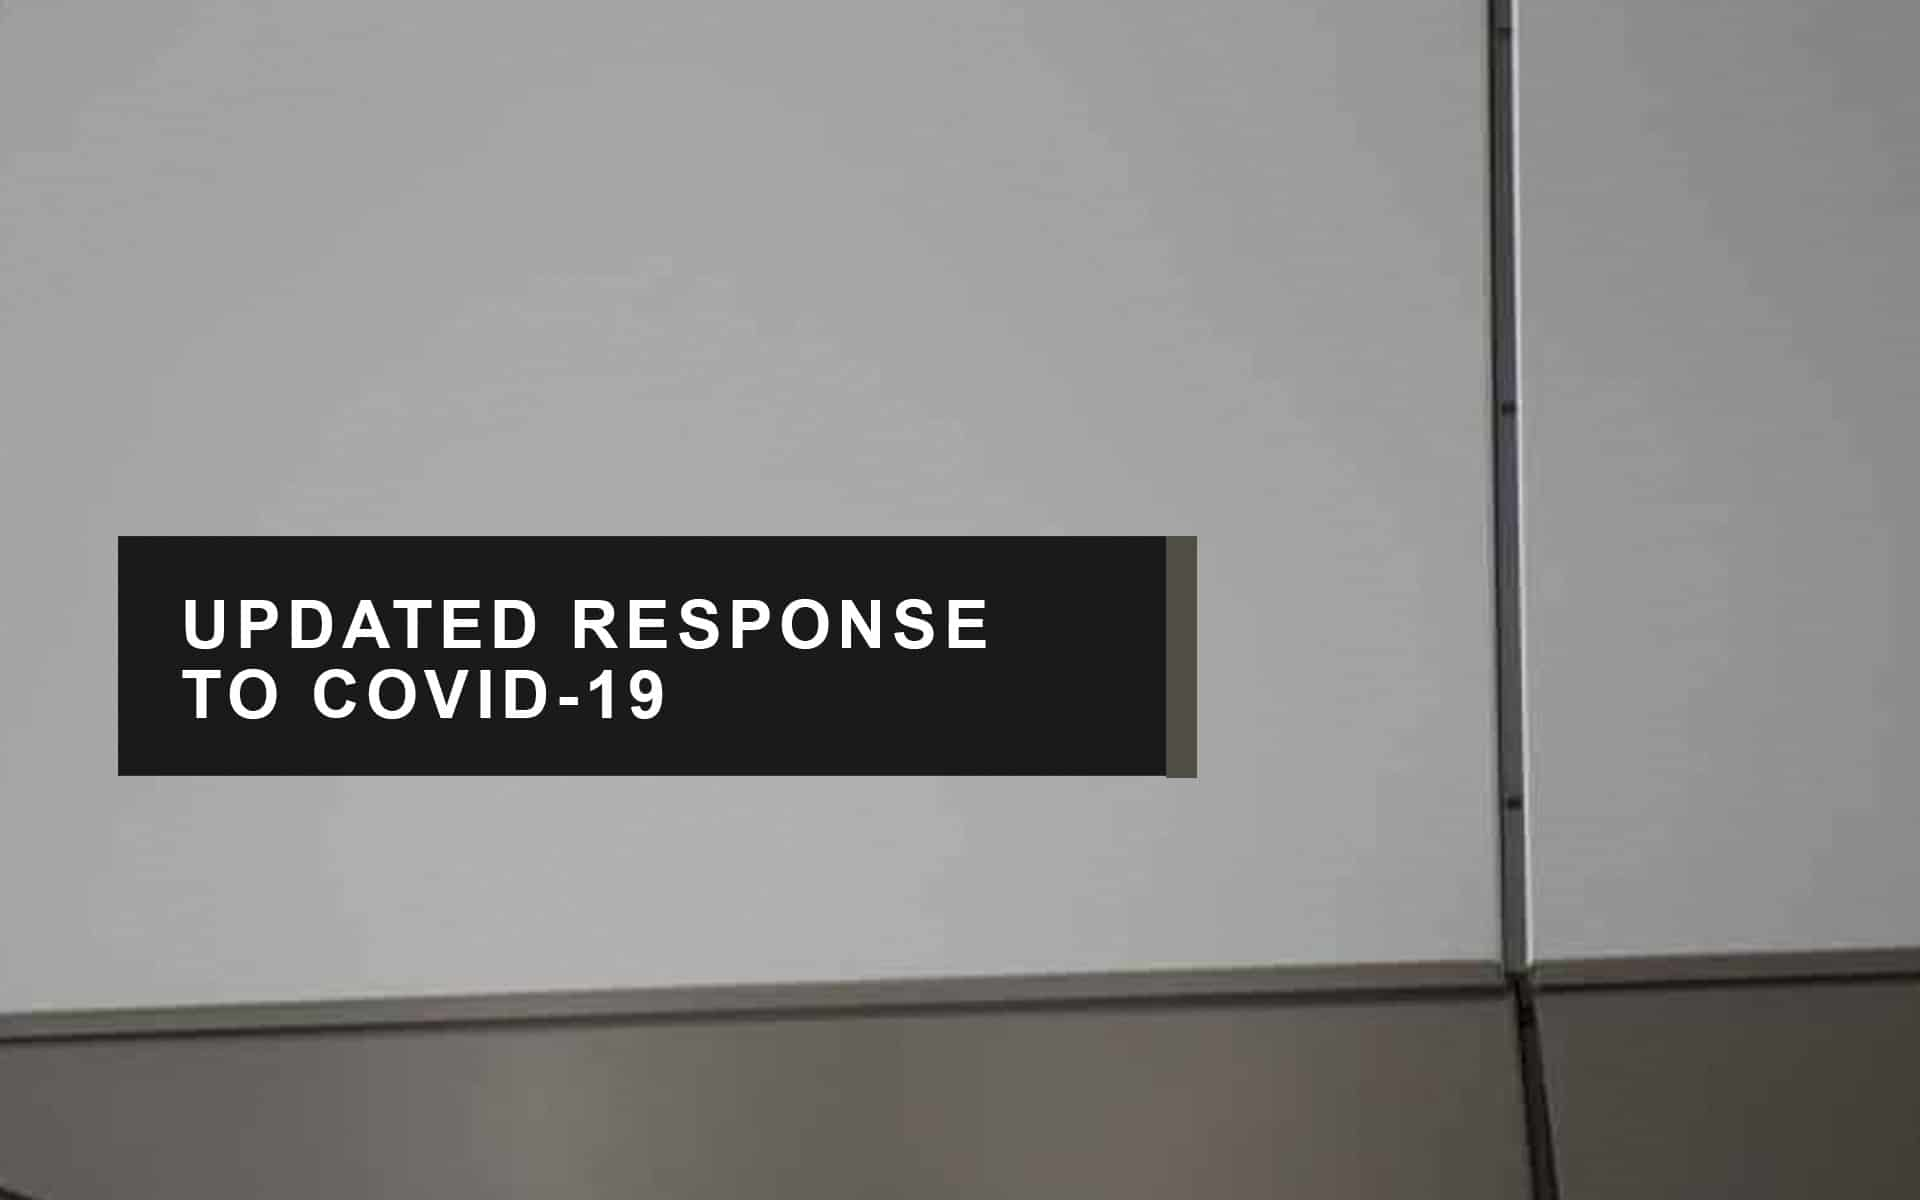 Covid 19 Updated Response